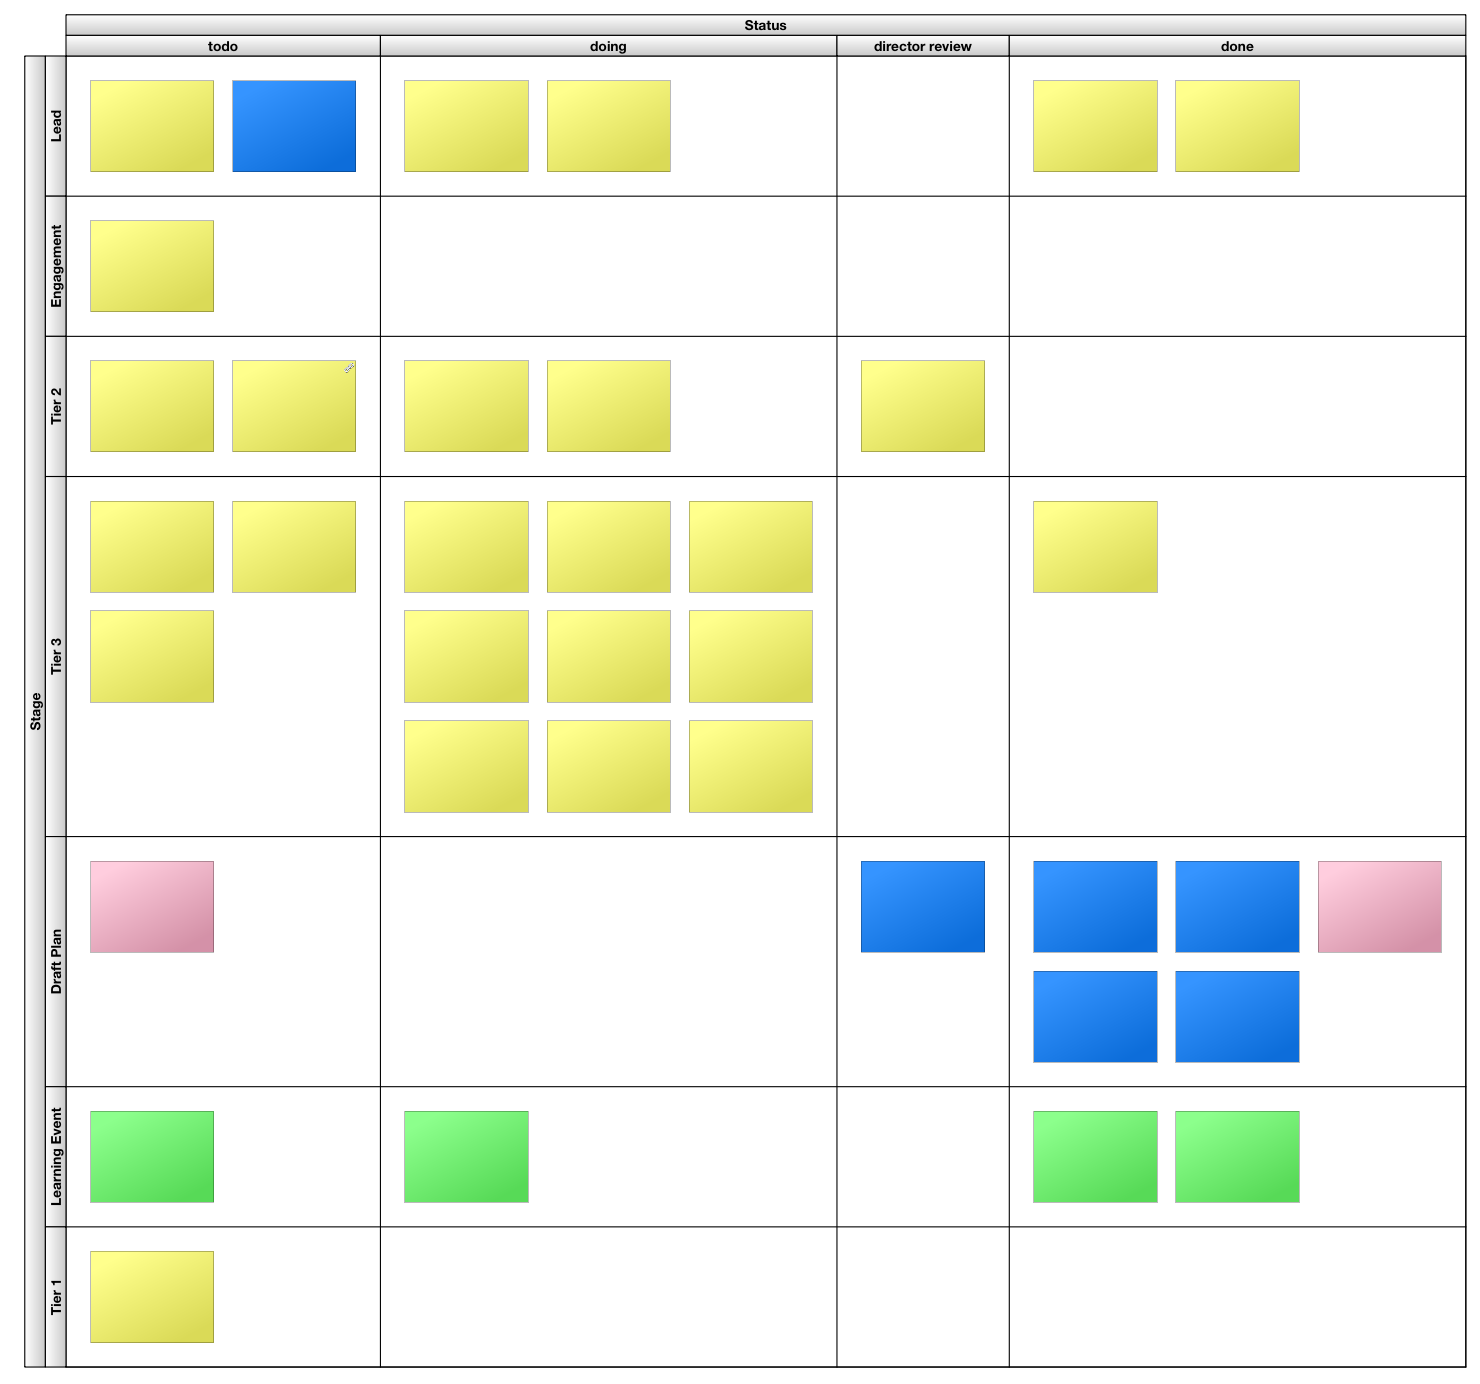 HyperPlan Kanban Board (text on cards has been redacted)